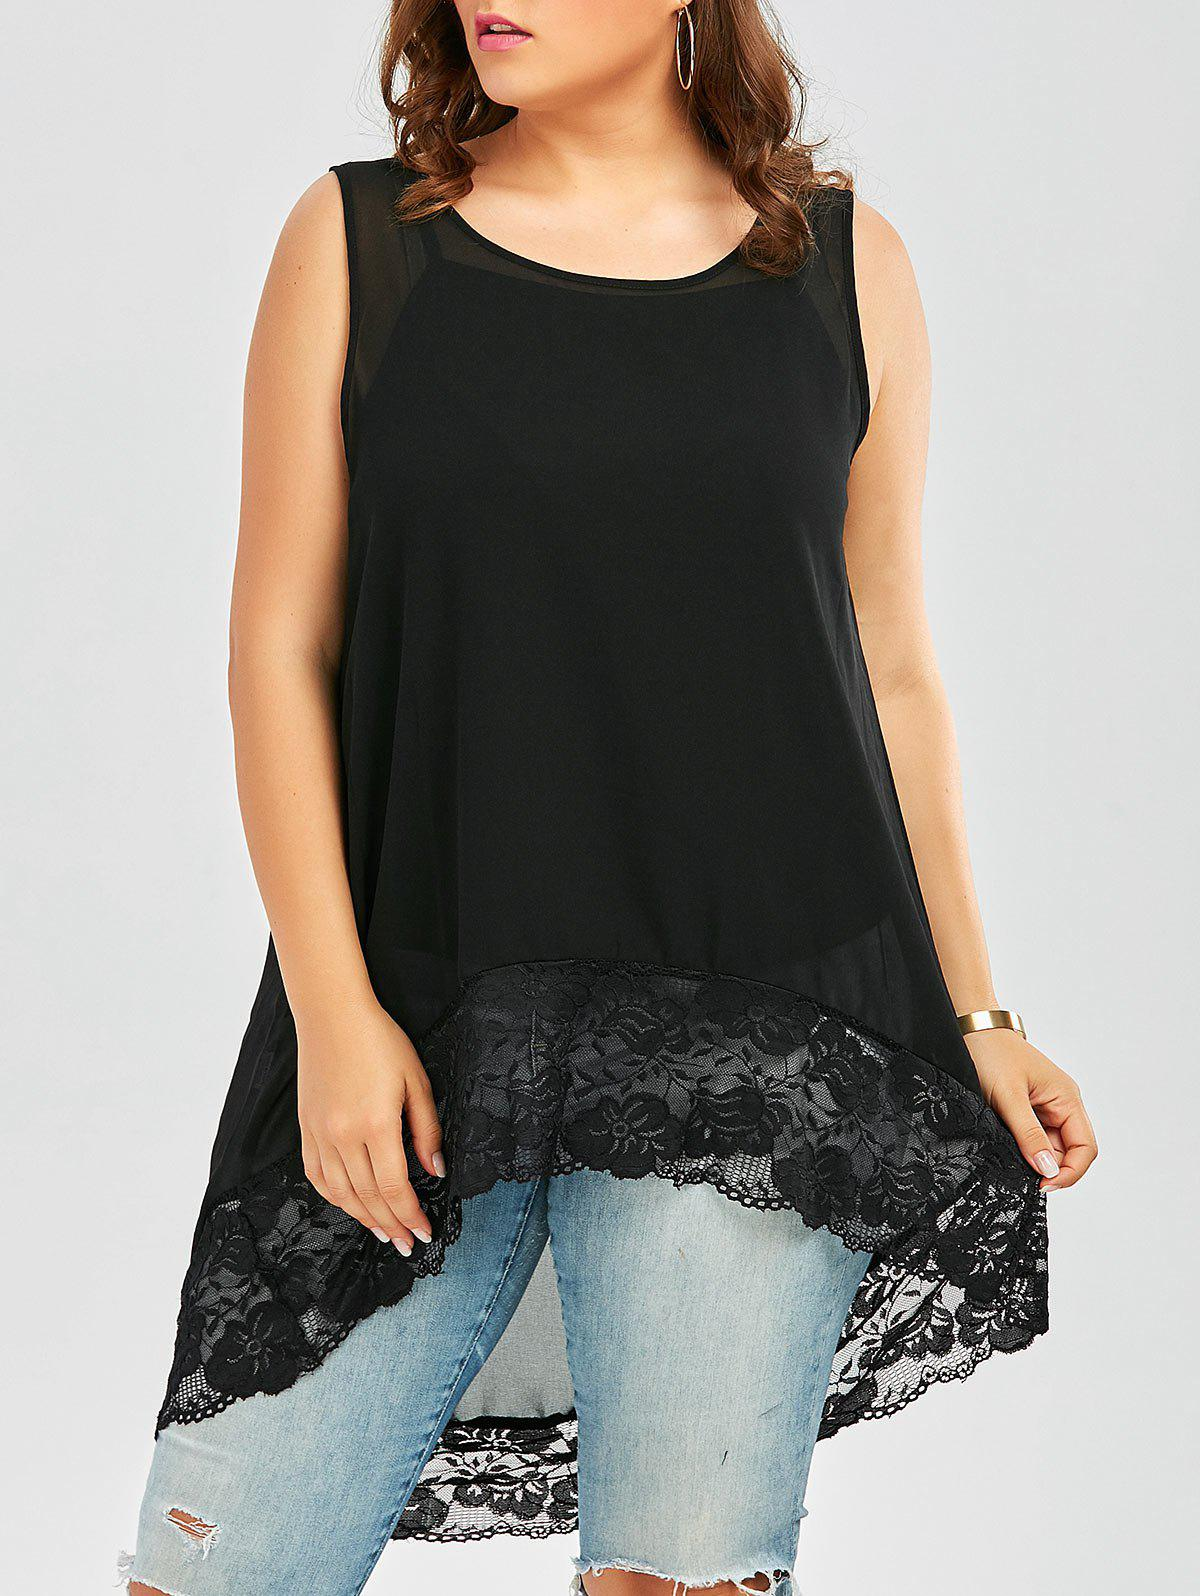 Plus Size Lace Trim Chiffon Flowy High Low Top plus size sheer lace trim ruched top